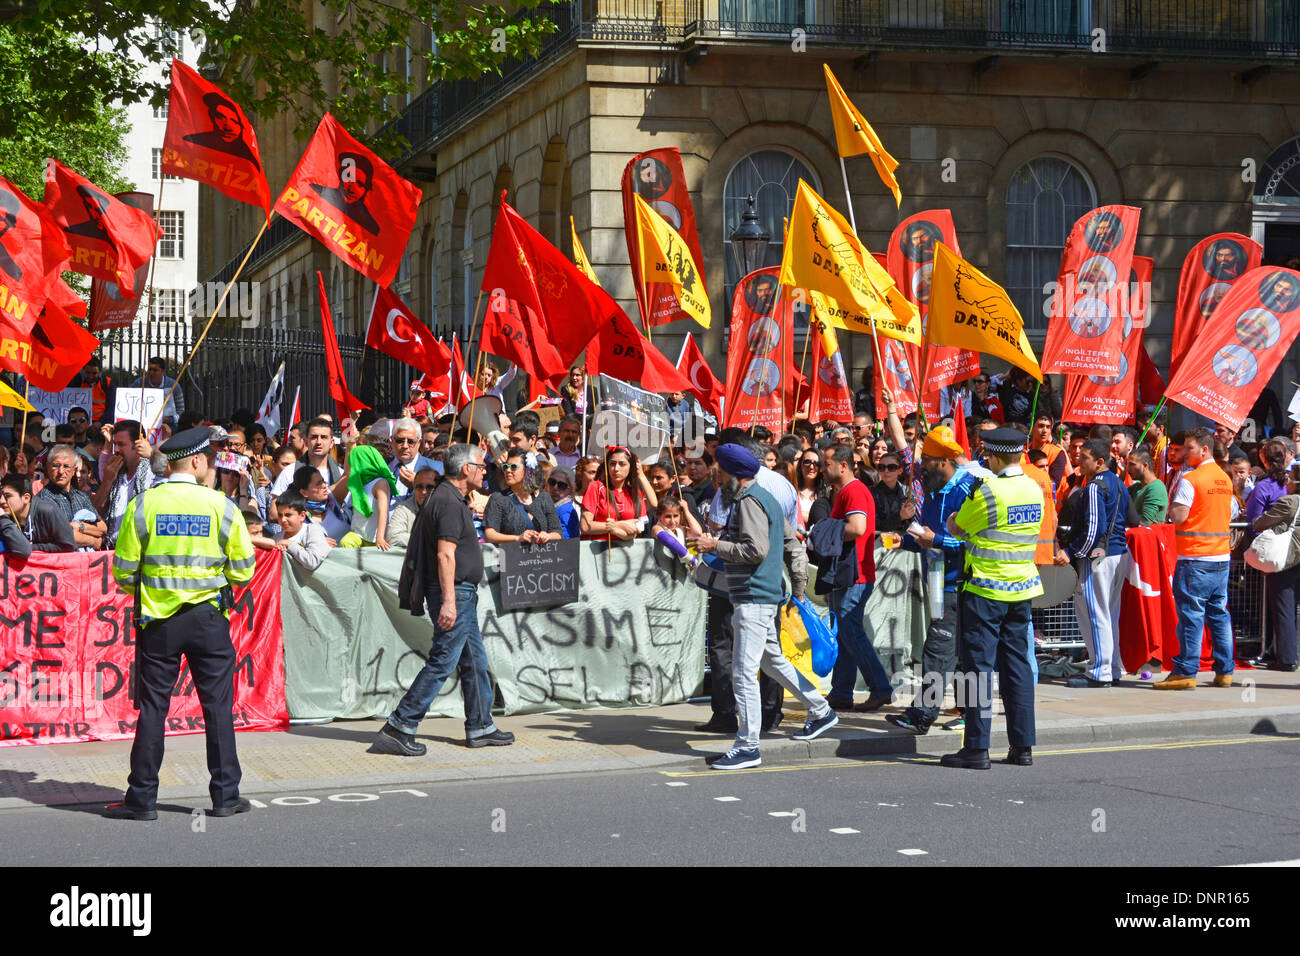 Turkish protest groups demonstrating in Whitehall opposite Downing Street - Stock Image